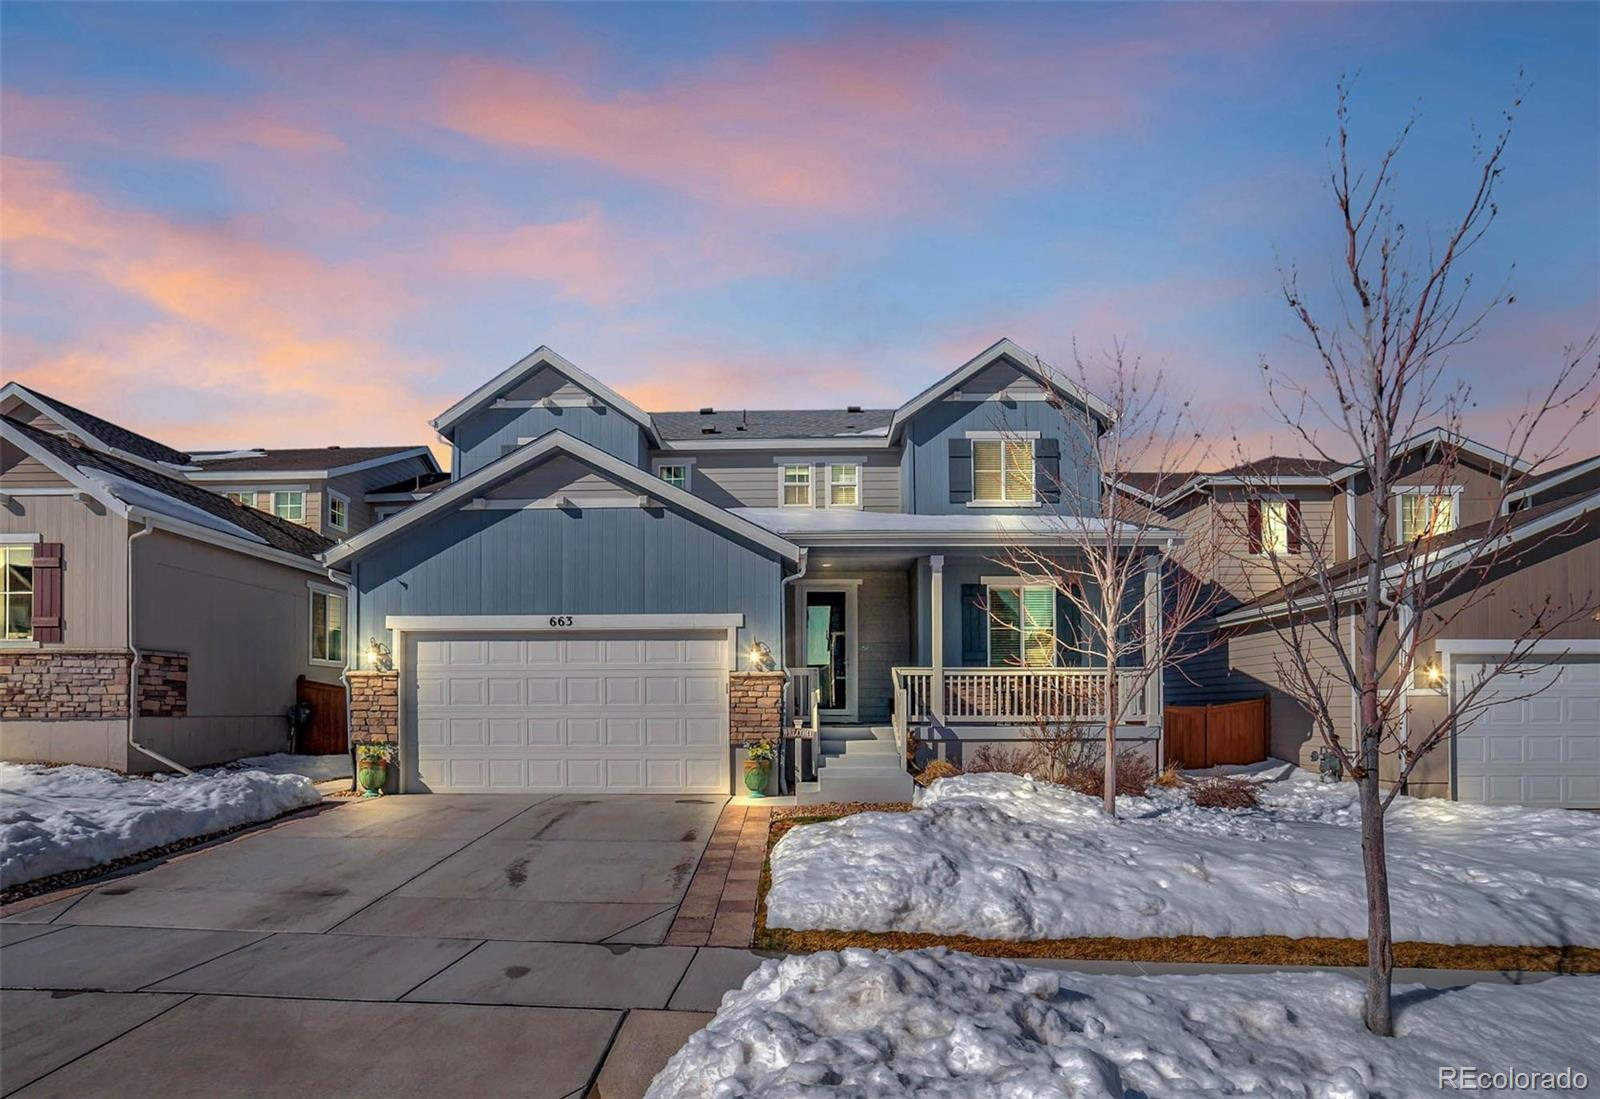 663 W 172nd Place, Broomfield, CO 80023 - #: 8591973